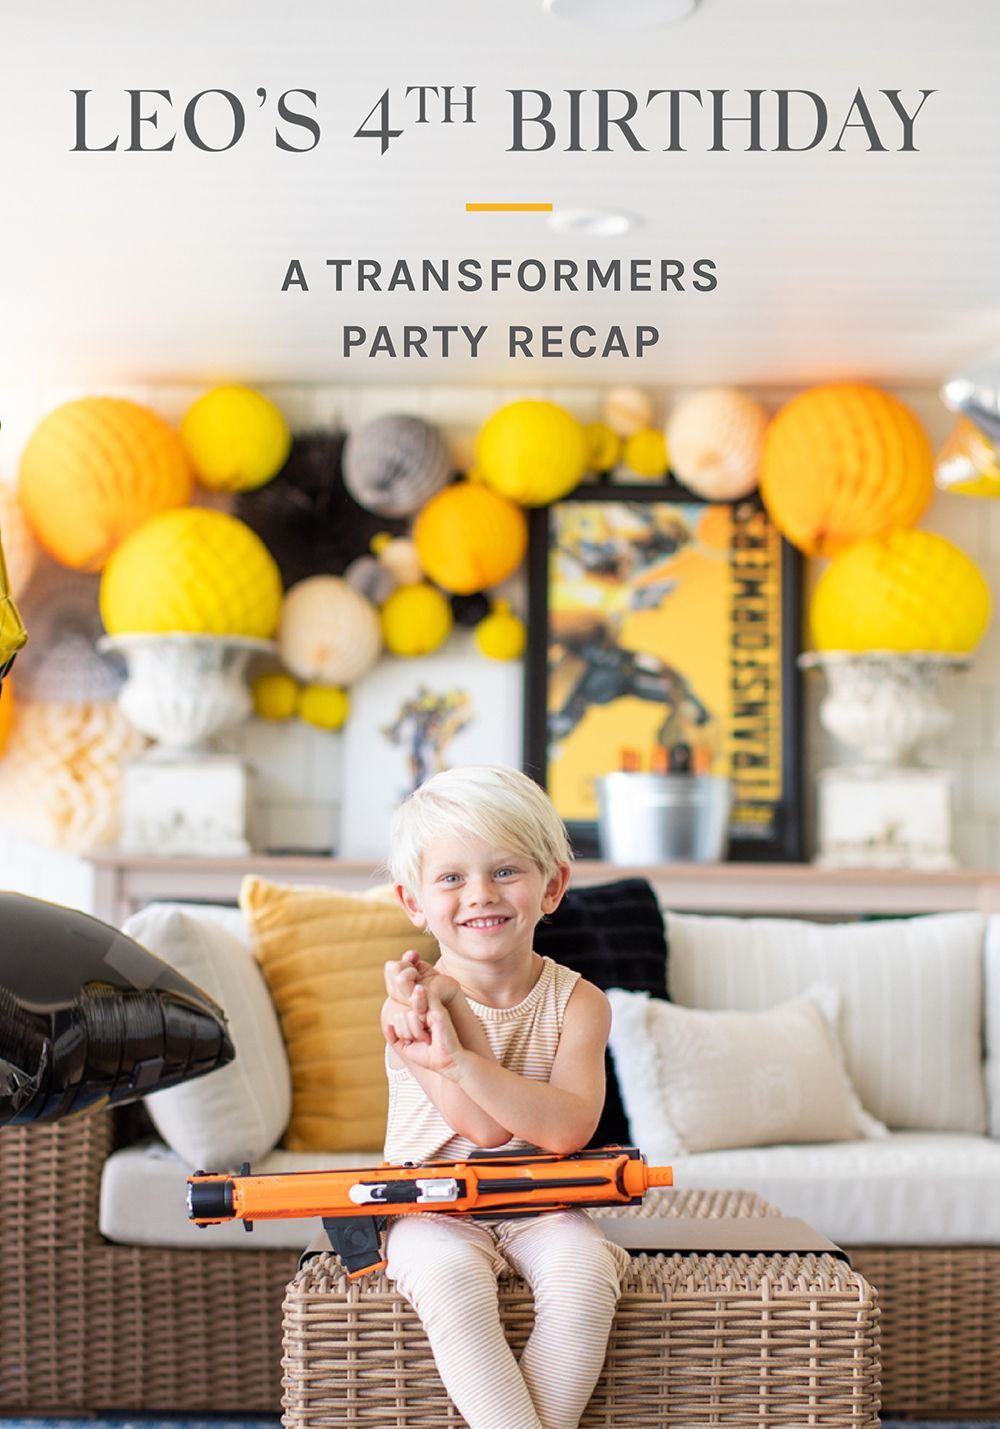 Leo's 4th Birthday A Transformers Party Recap in 2020